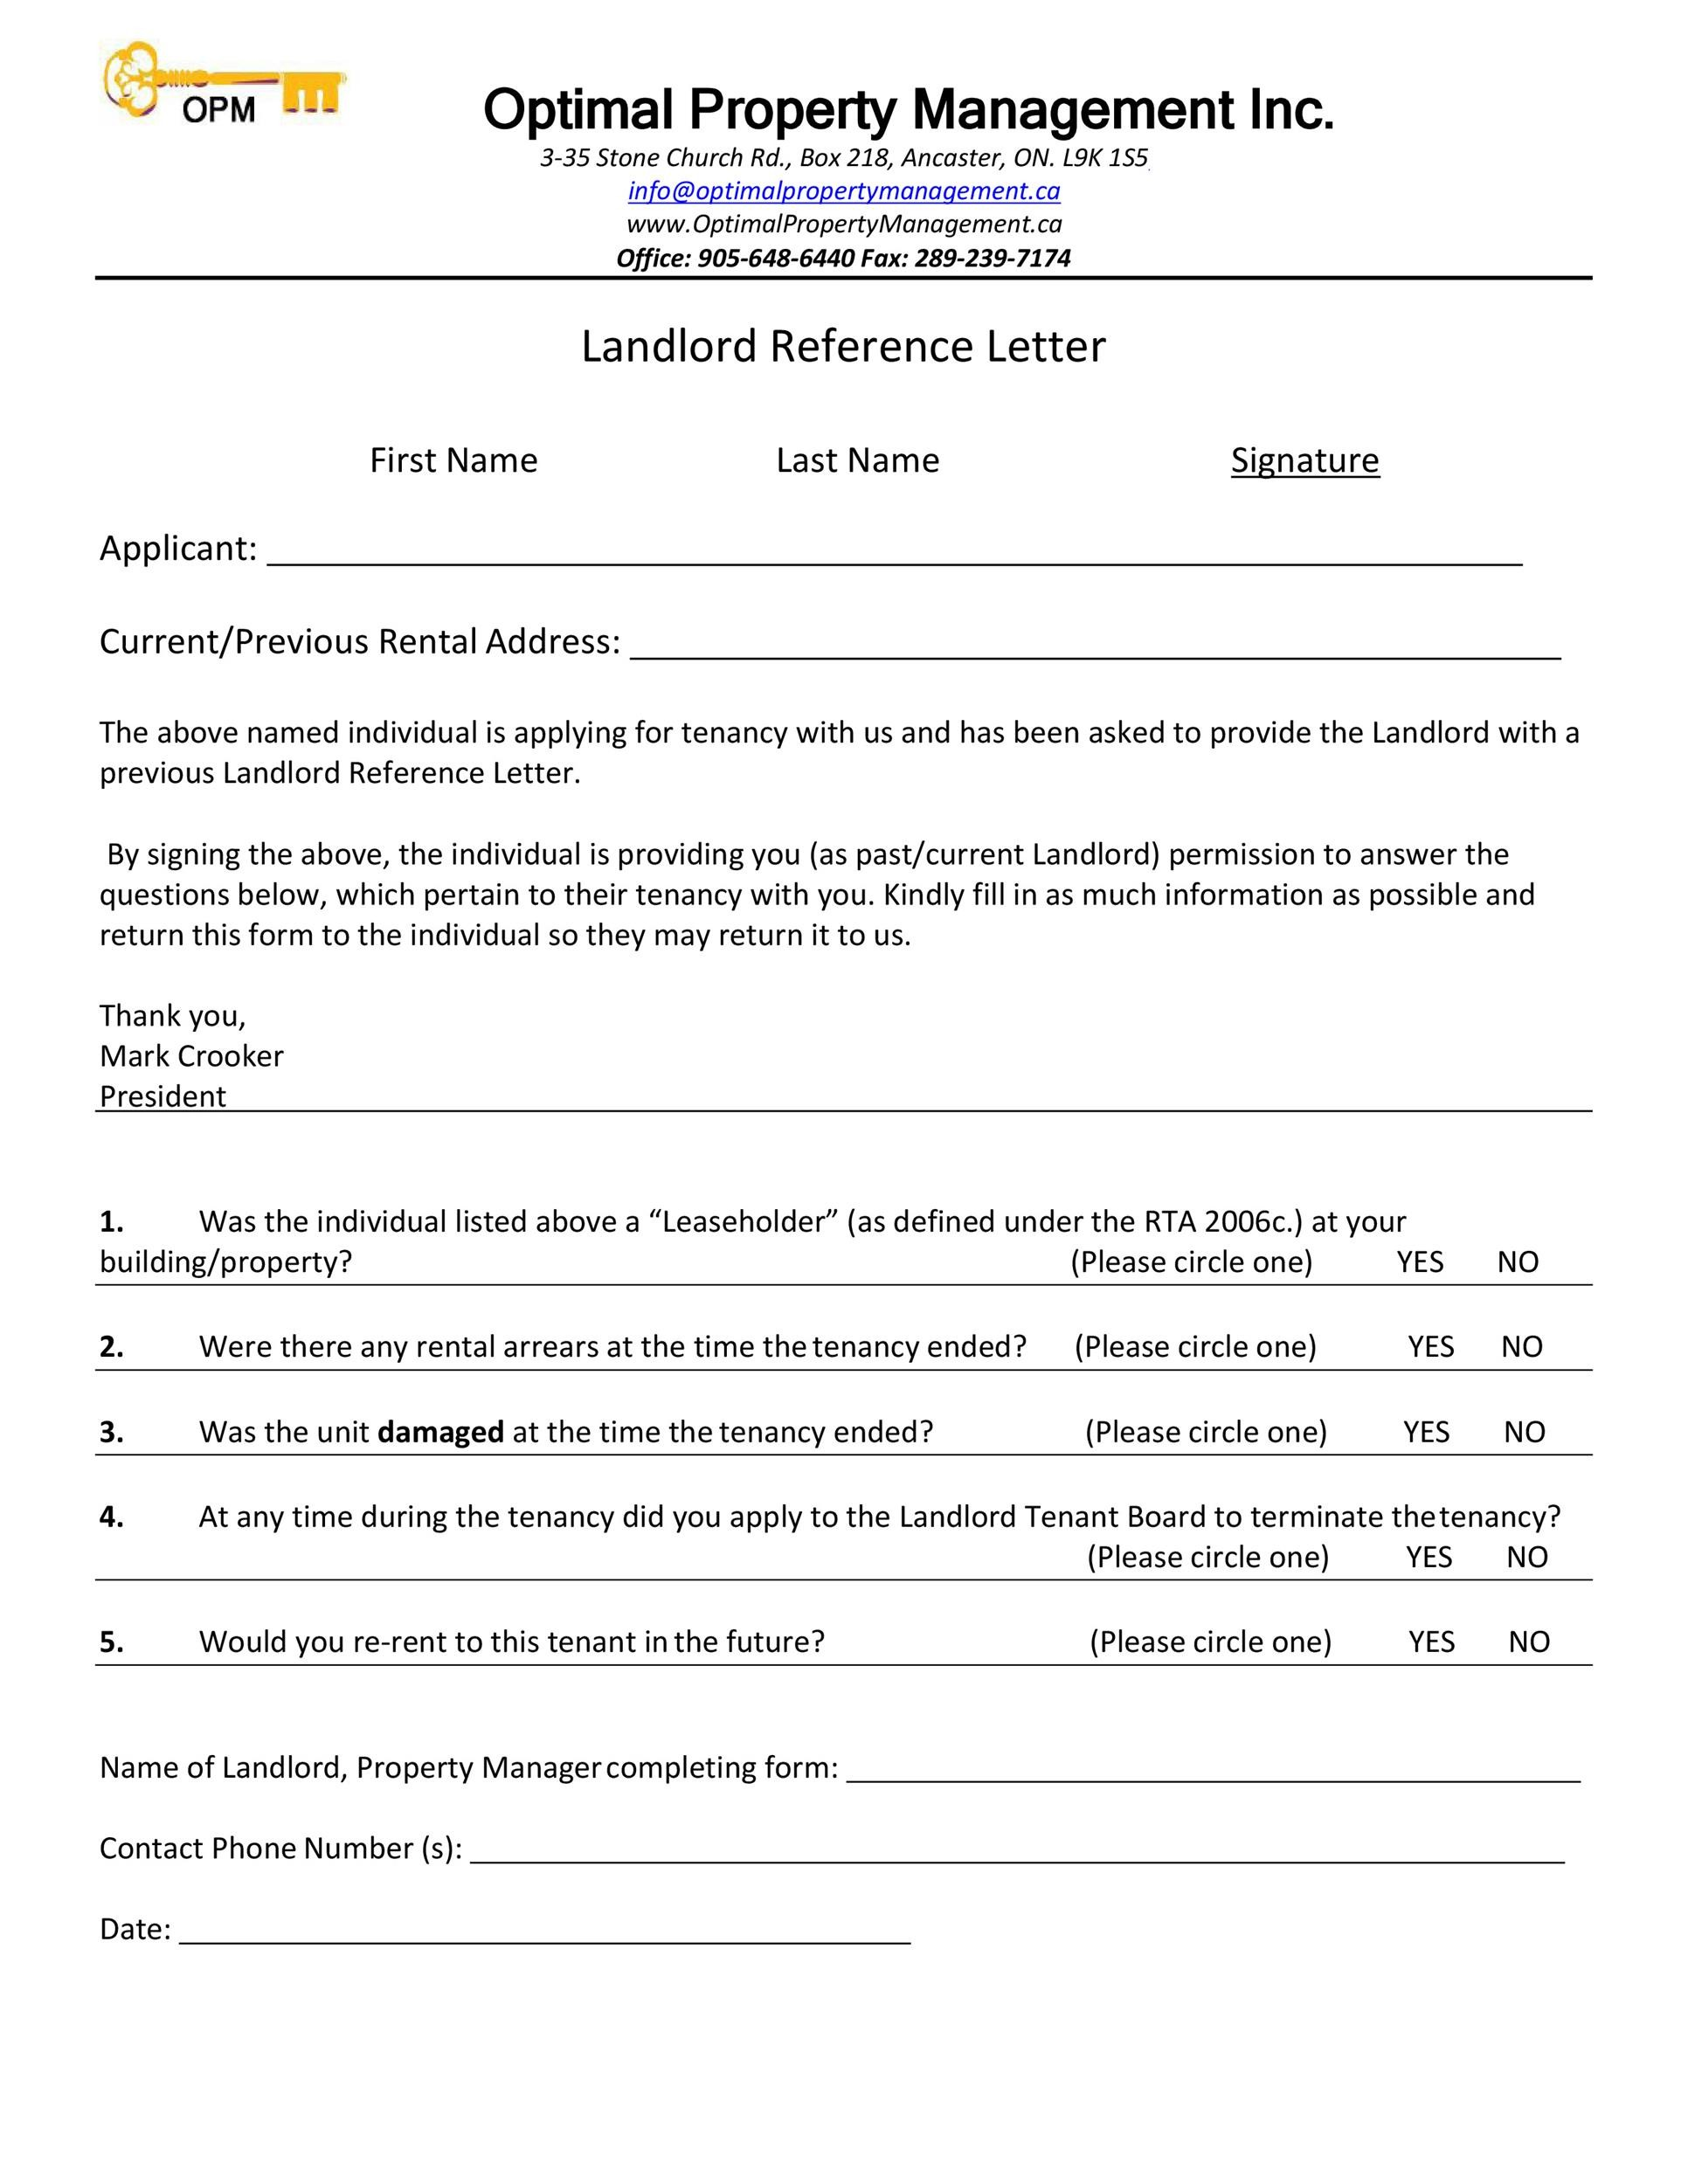 40 Landlord Reference Letters Form Samples Template Lab